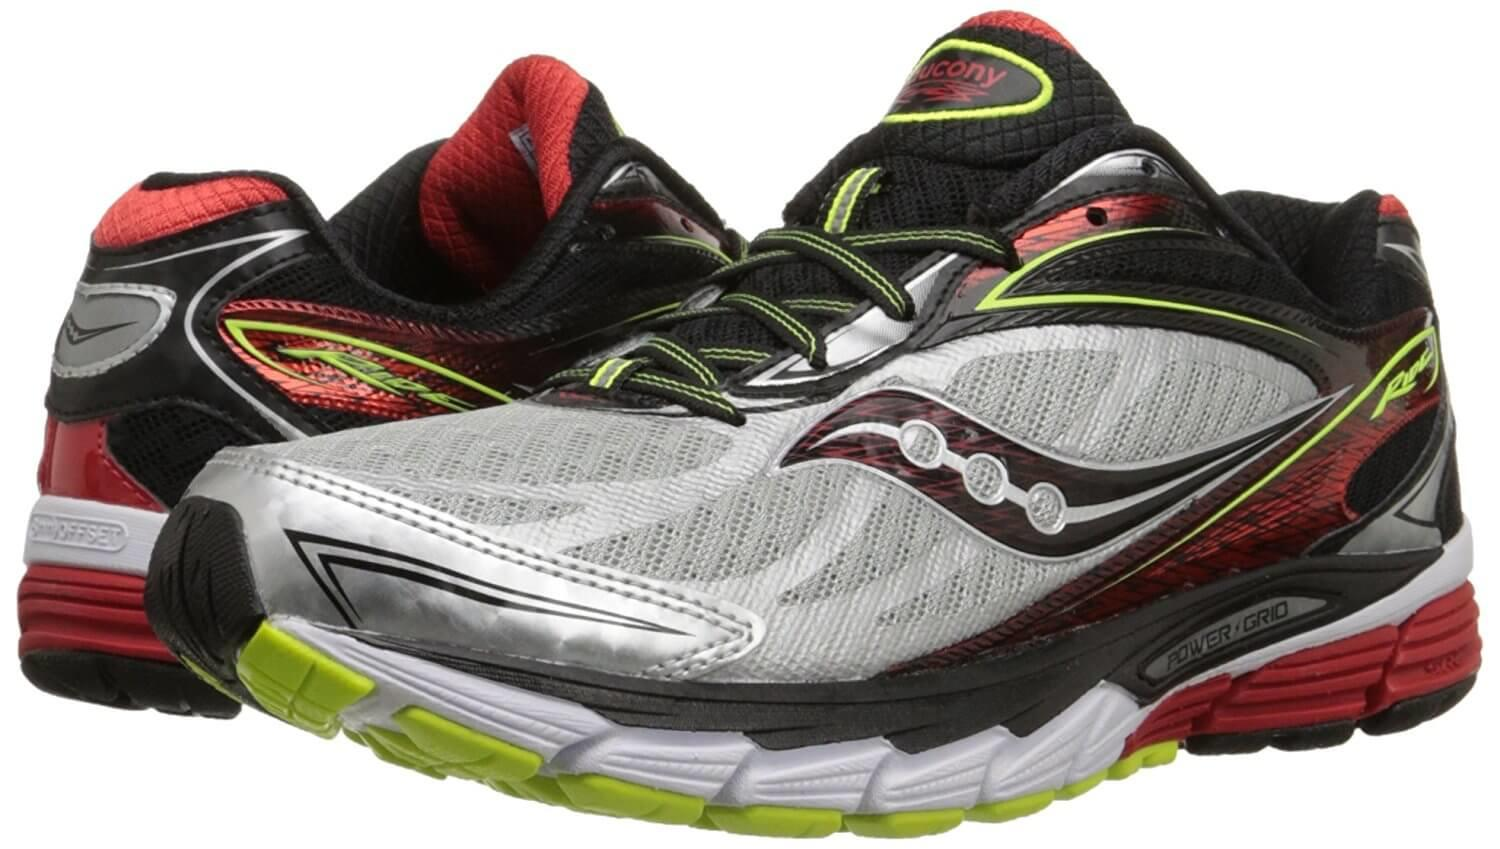 c5c3e279b626 Saucony Ride 8 Reviewed - To Buy or Not in Apr 2019